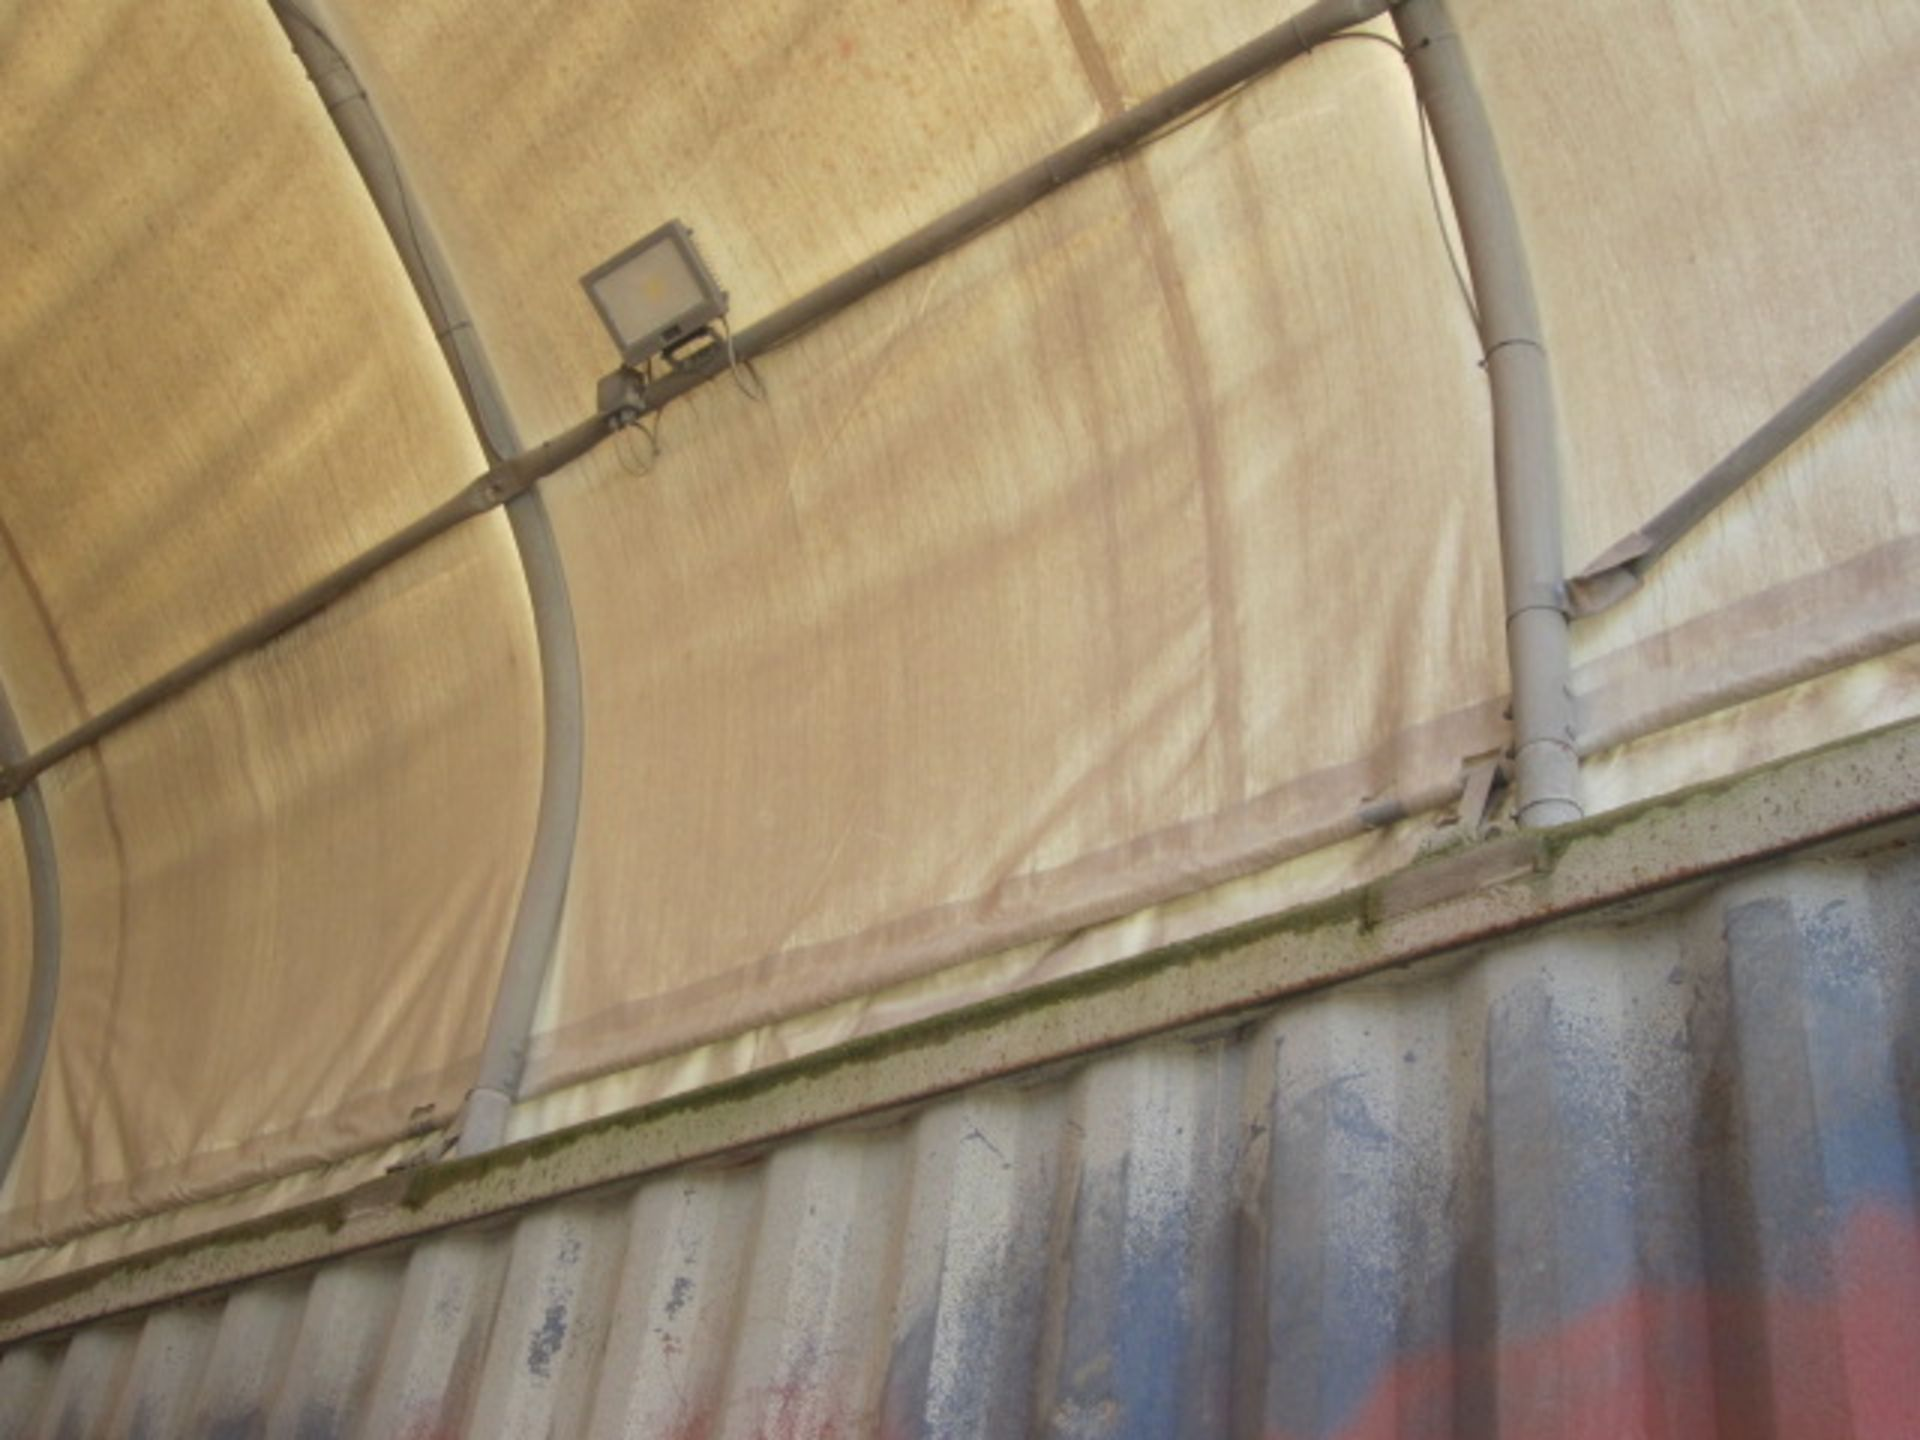 Shelter - IT portable industrial canopy, tubular frame, approx. 40ft length x 22ft width x 20ft - Image 6 of 6